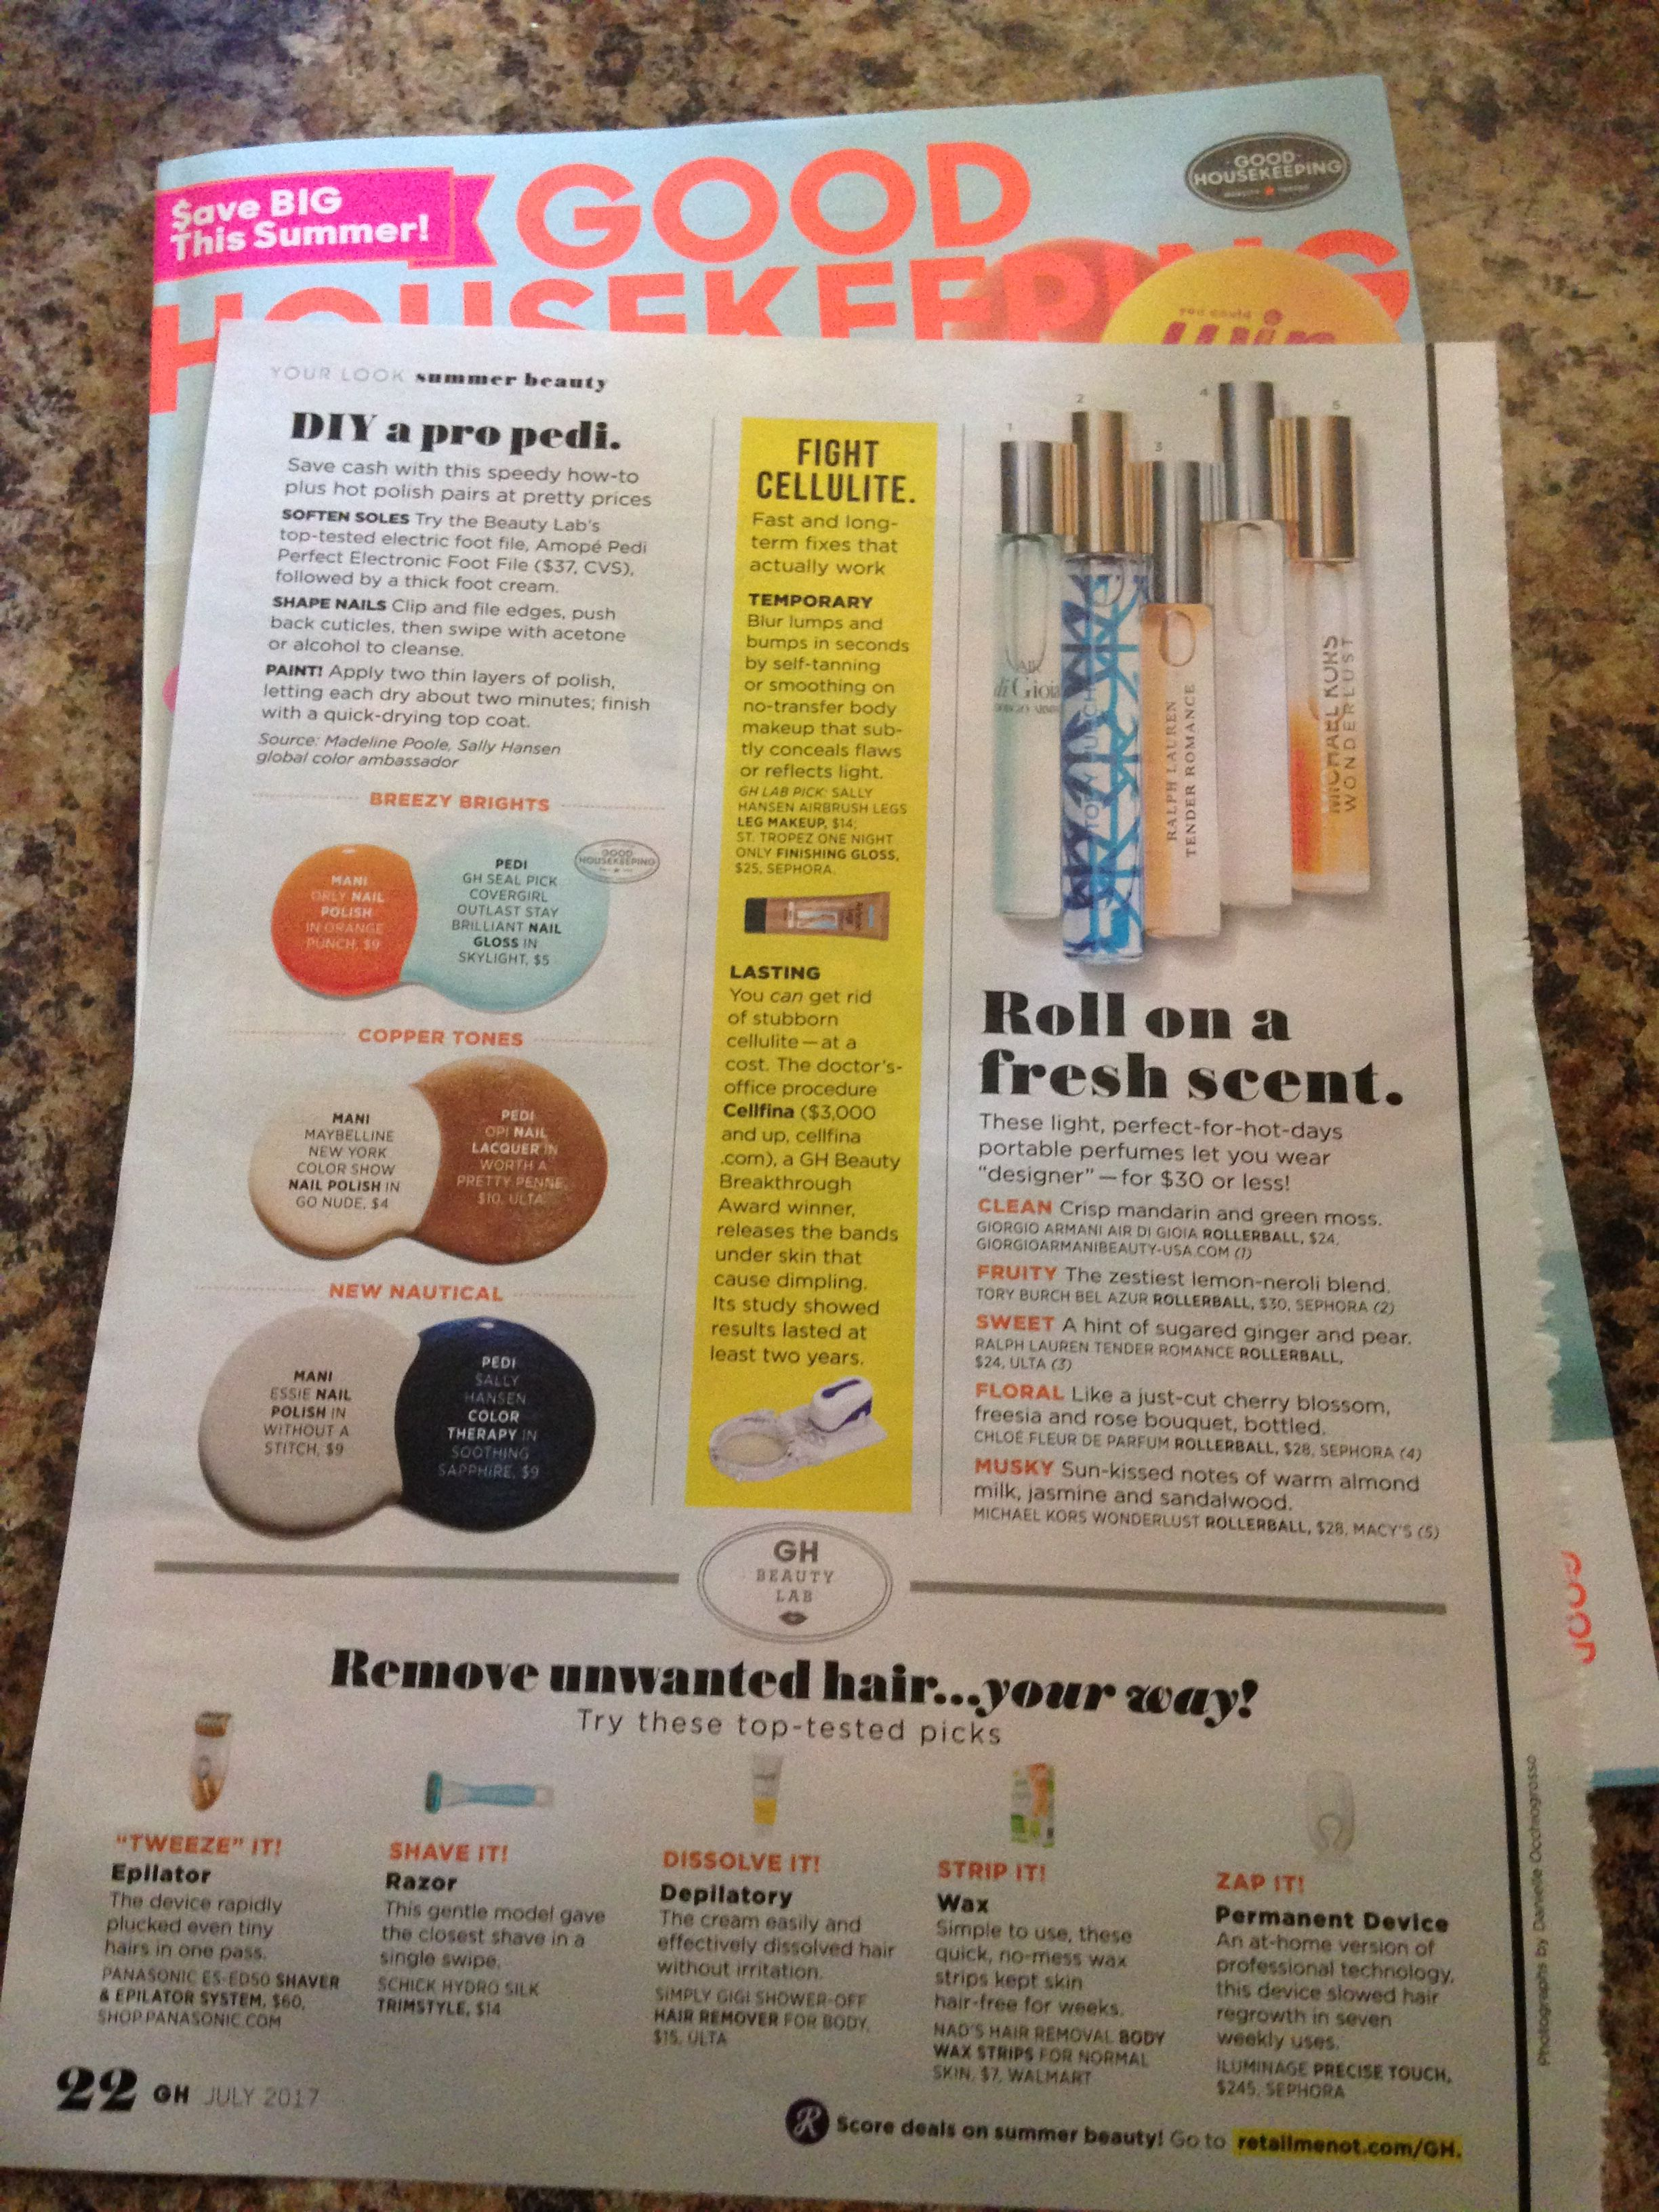 New perfume rollerballs featured in July 2017 Good Housekeeping magazine